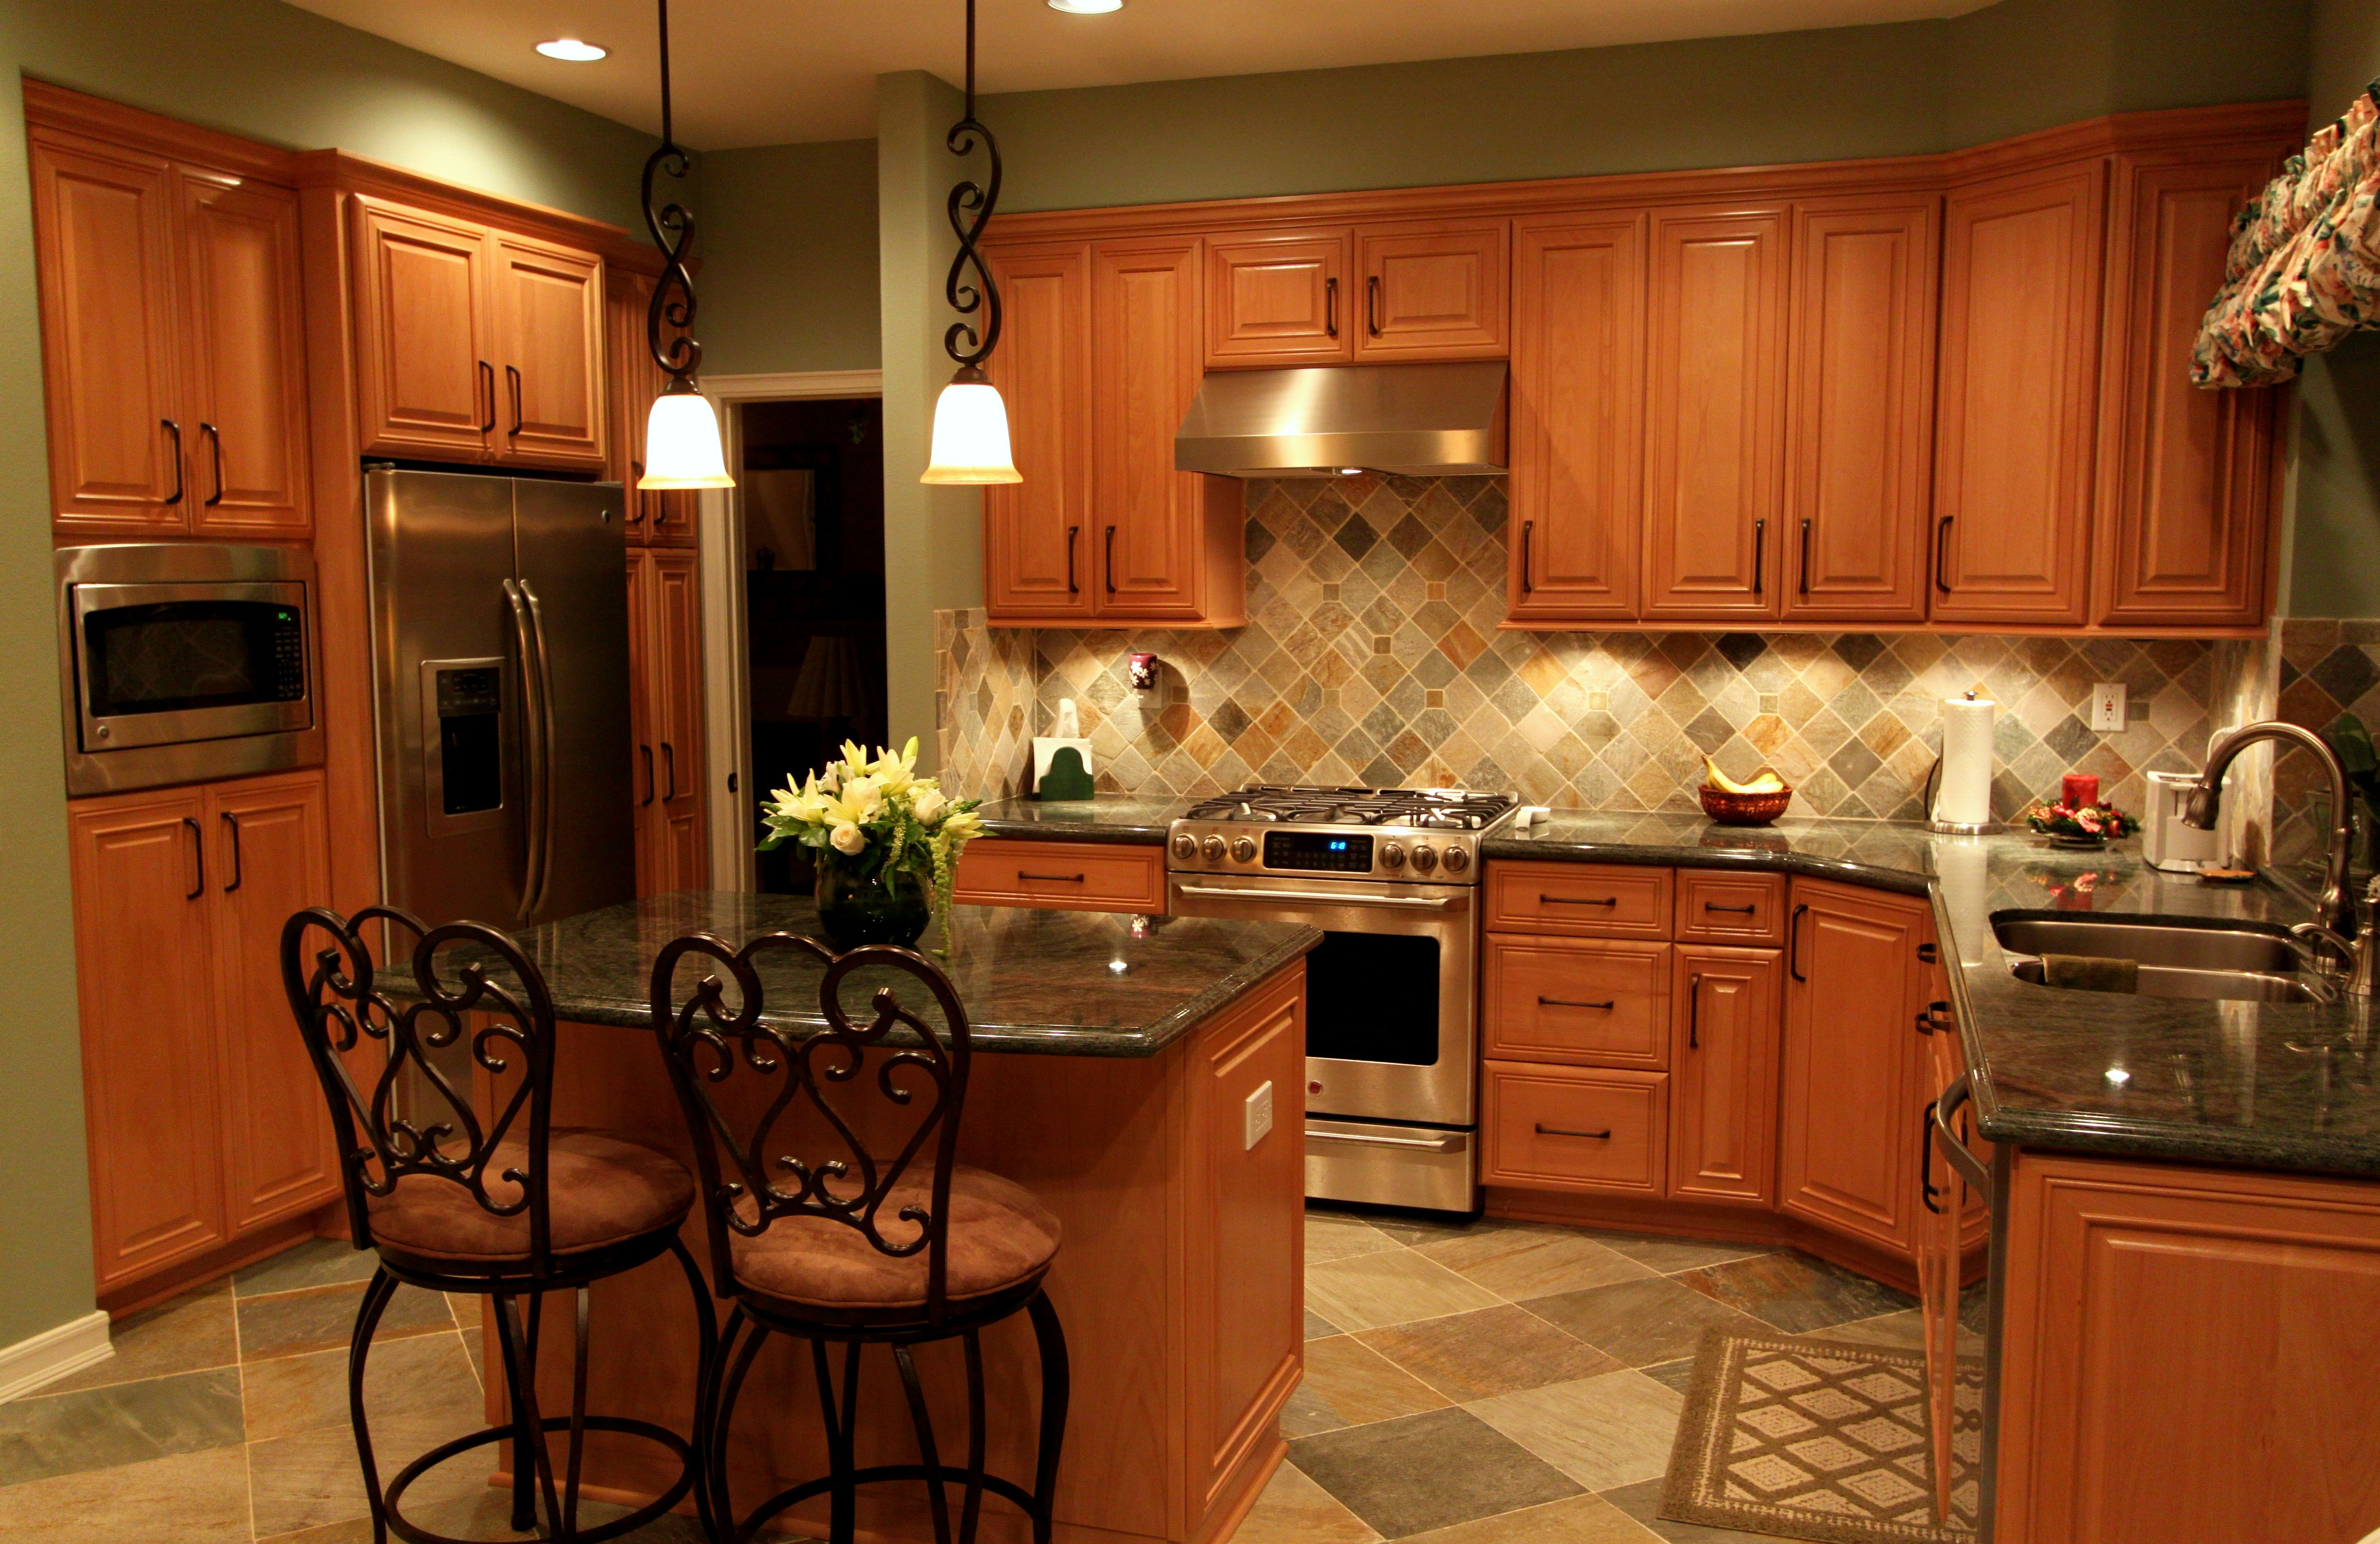 Cabinet Refacing Kitchen Remodeling Services Orange County Kitchen Remodel Kitchen Cabinet Remodel Kitchen Remodeling Services